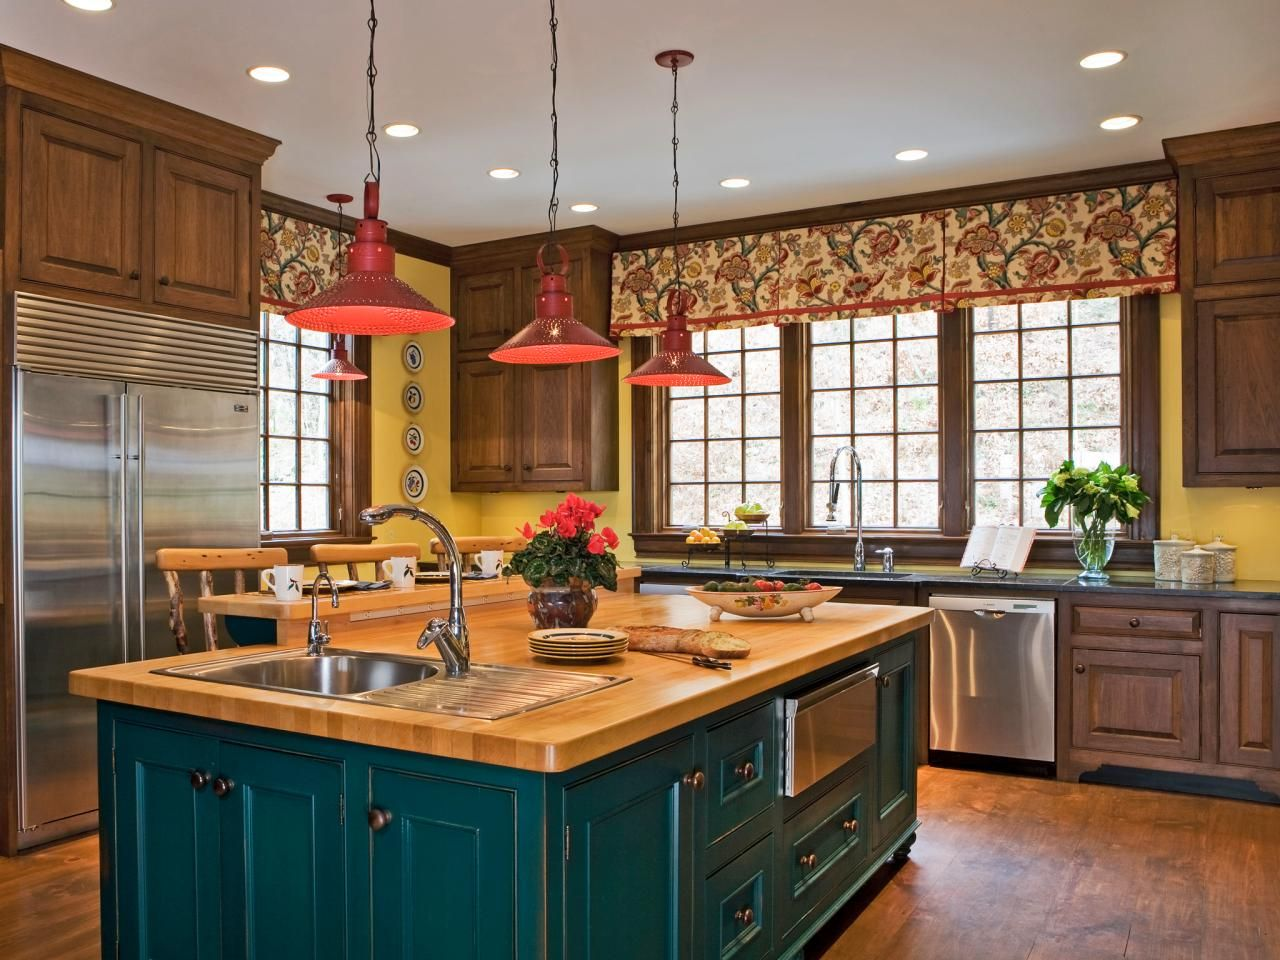 30 Colorful Kitchen Design Ideas From  Hgtv Kitchens Hgtv And Cool Kitchen Colour Designs Ideas Design Decoration